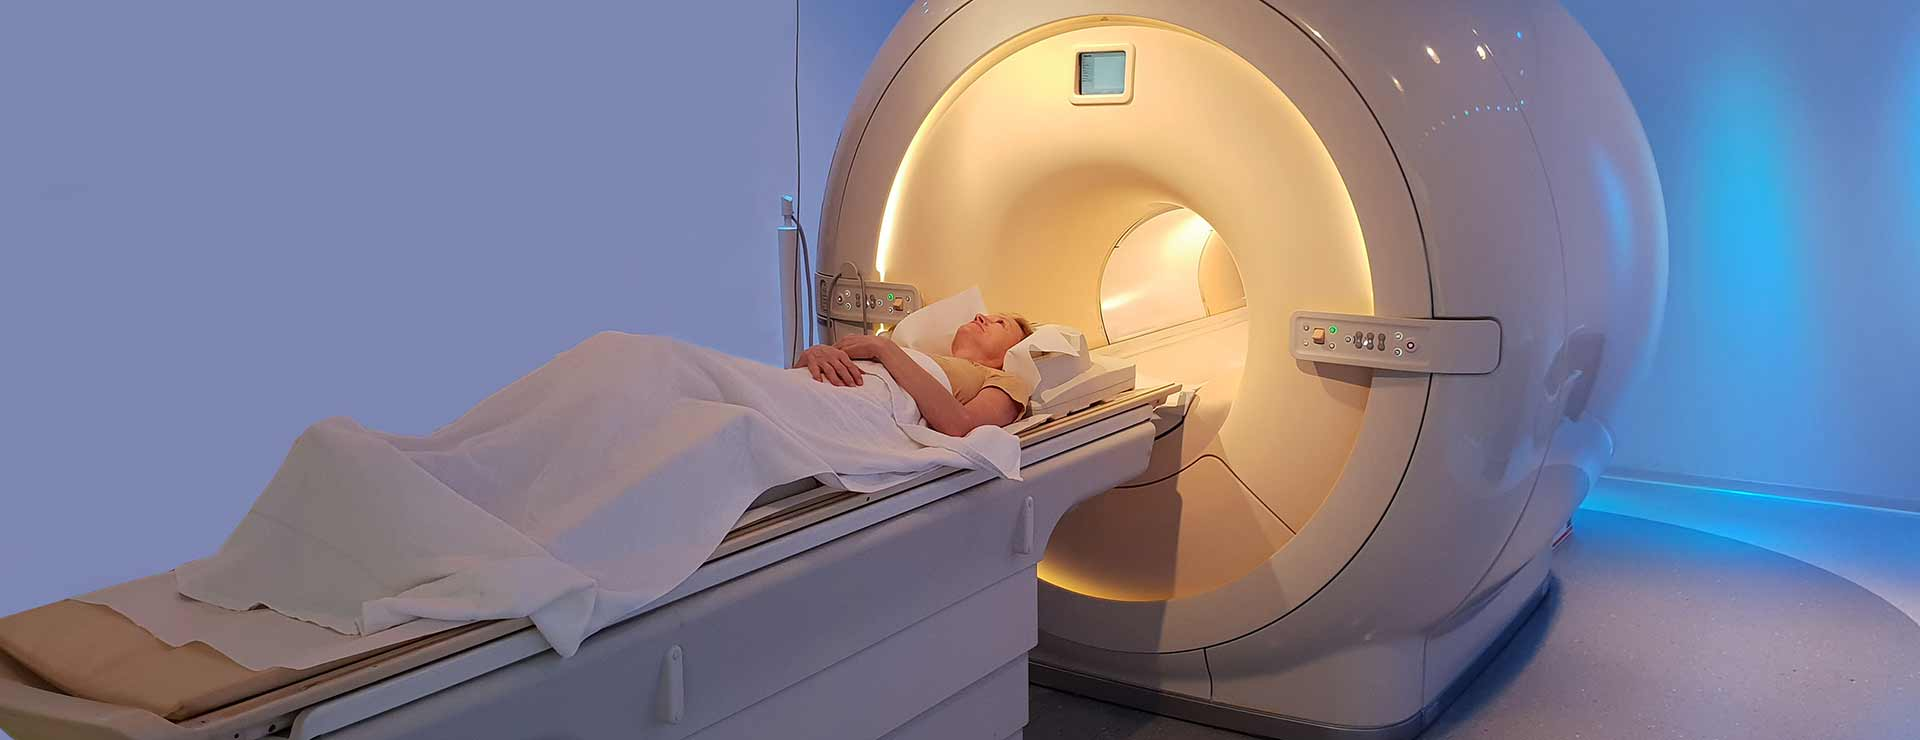 A patient undergoes a CT scan.